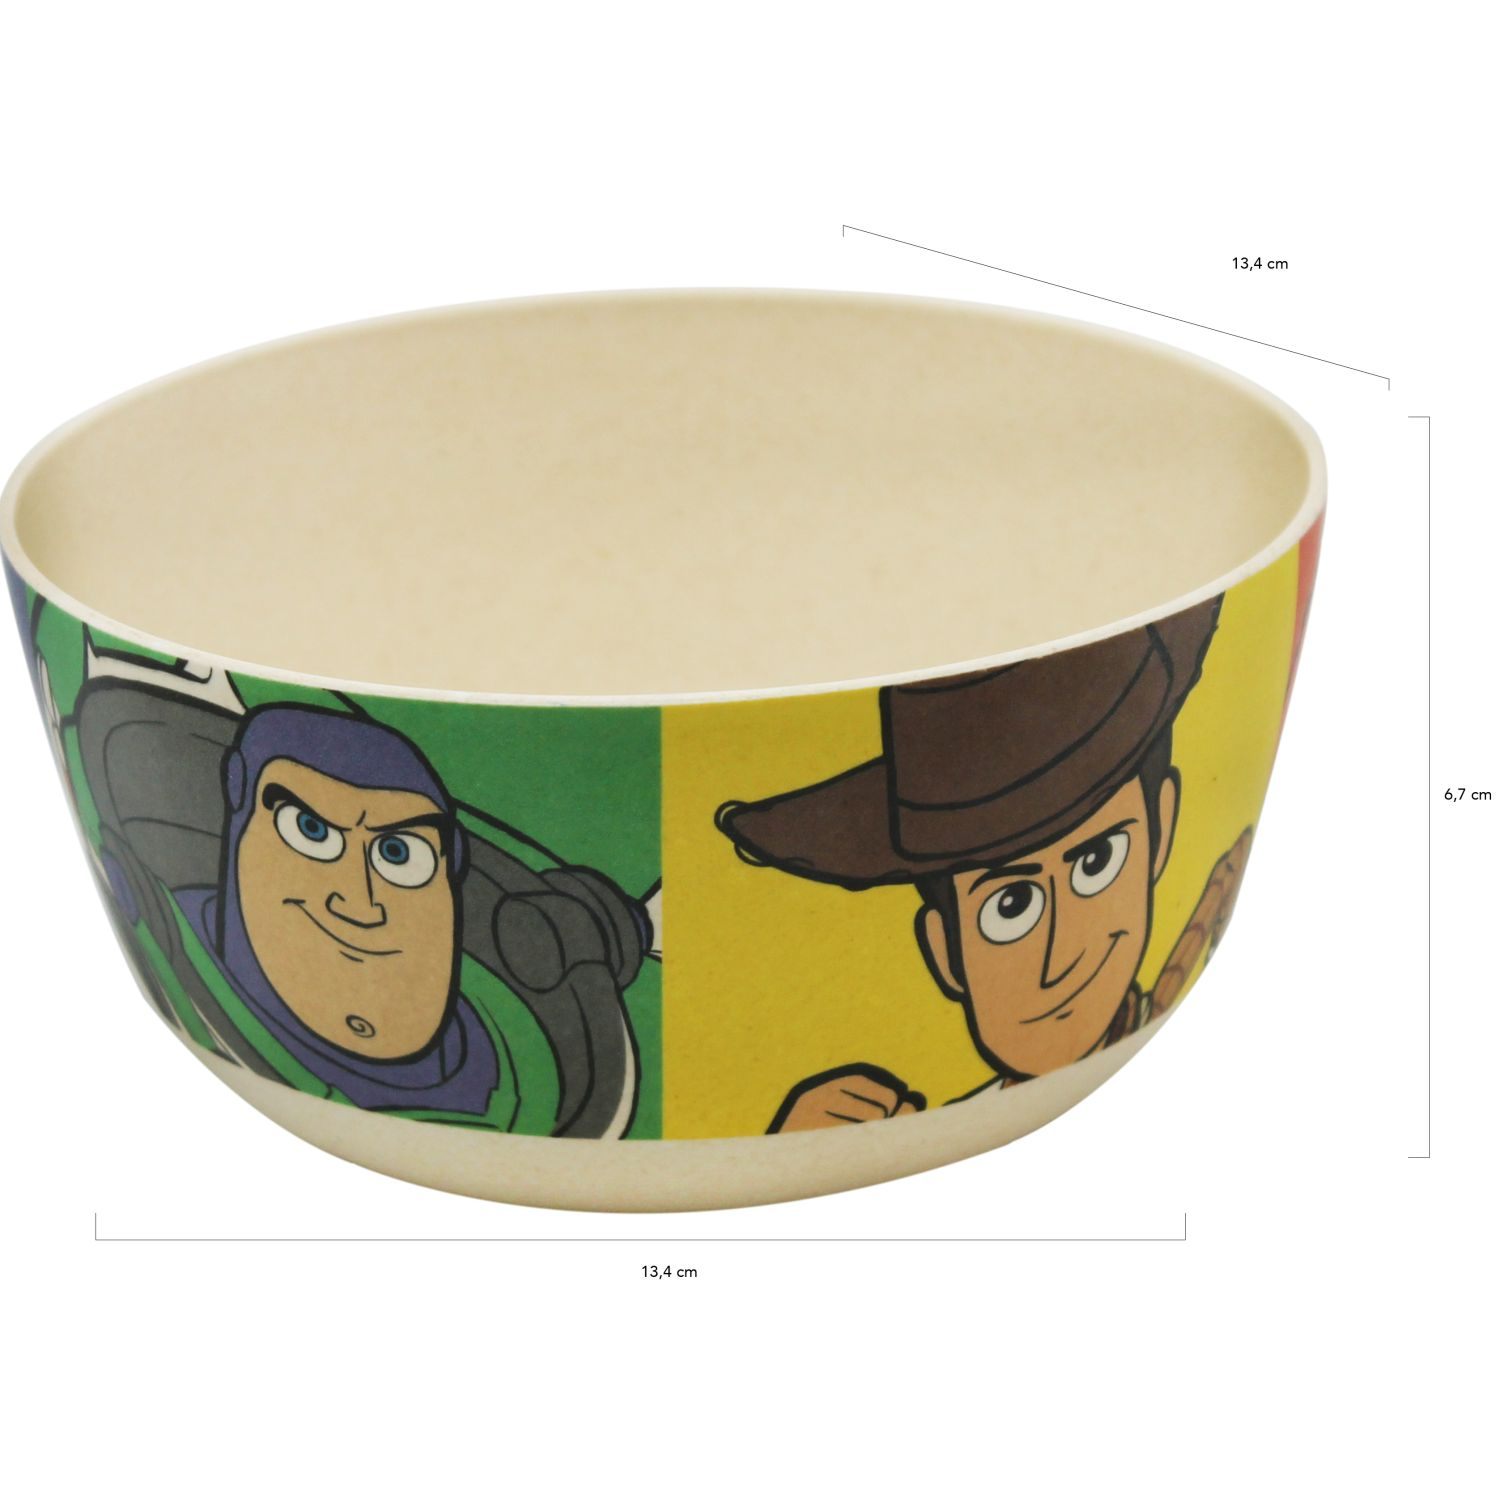 Toy Story Verde / amarillo bowl bamboo toy story 4